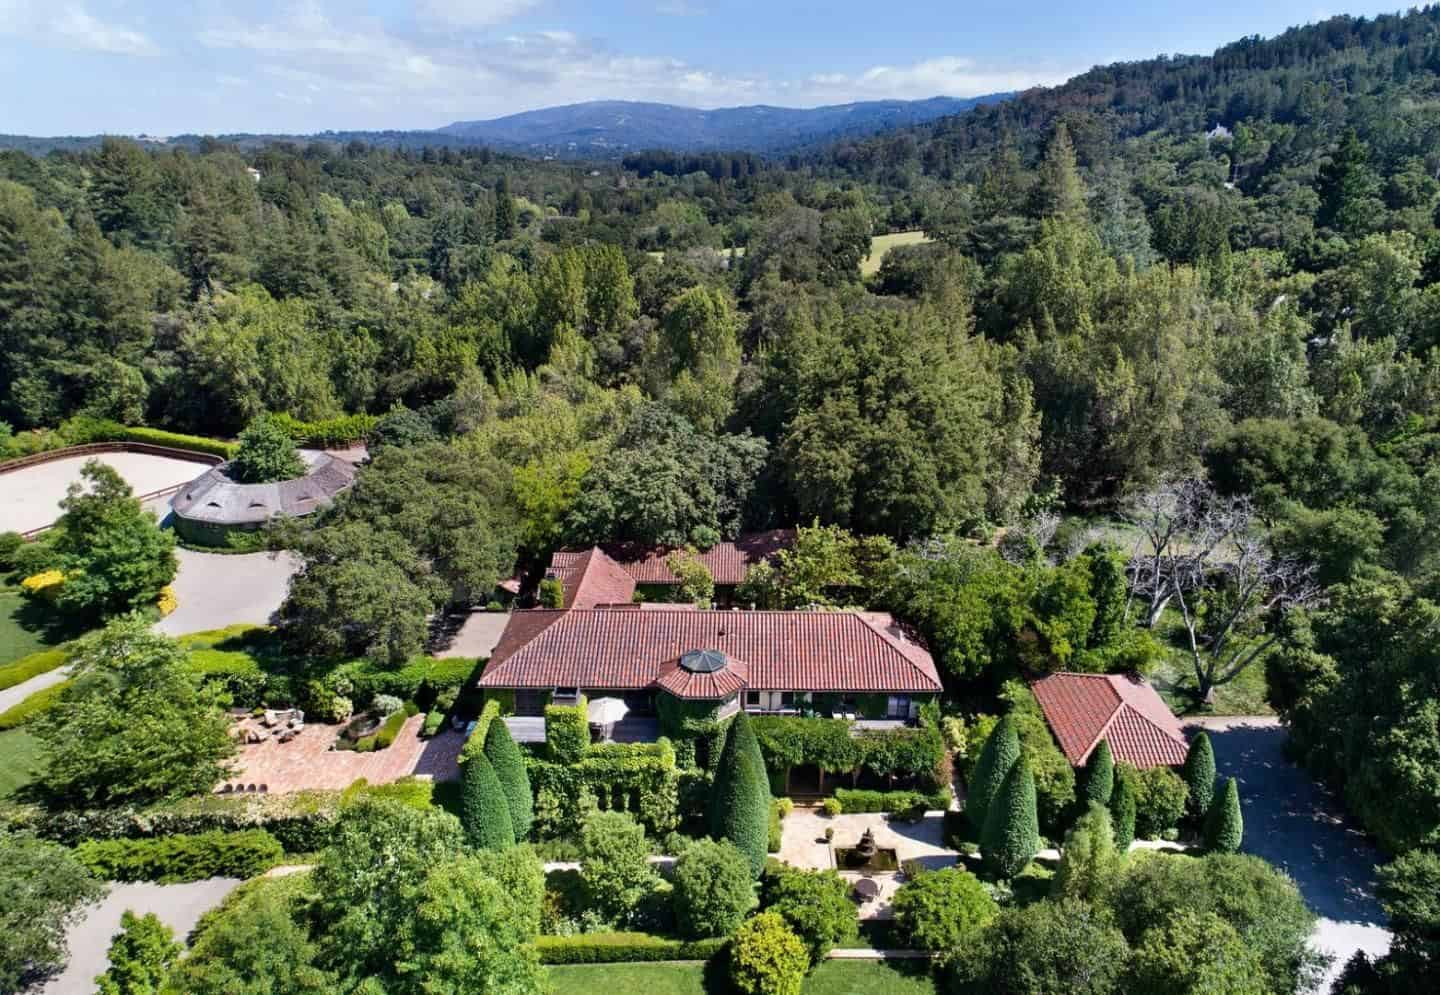 Aerial view of the estate featuring a beautiful landscaping and house architecture.